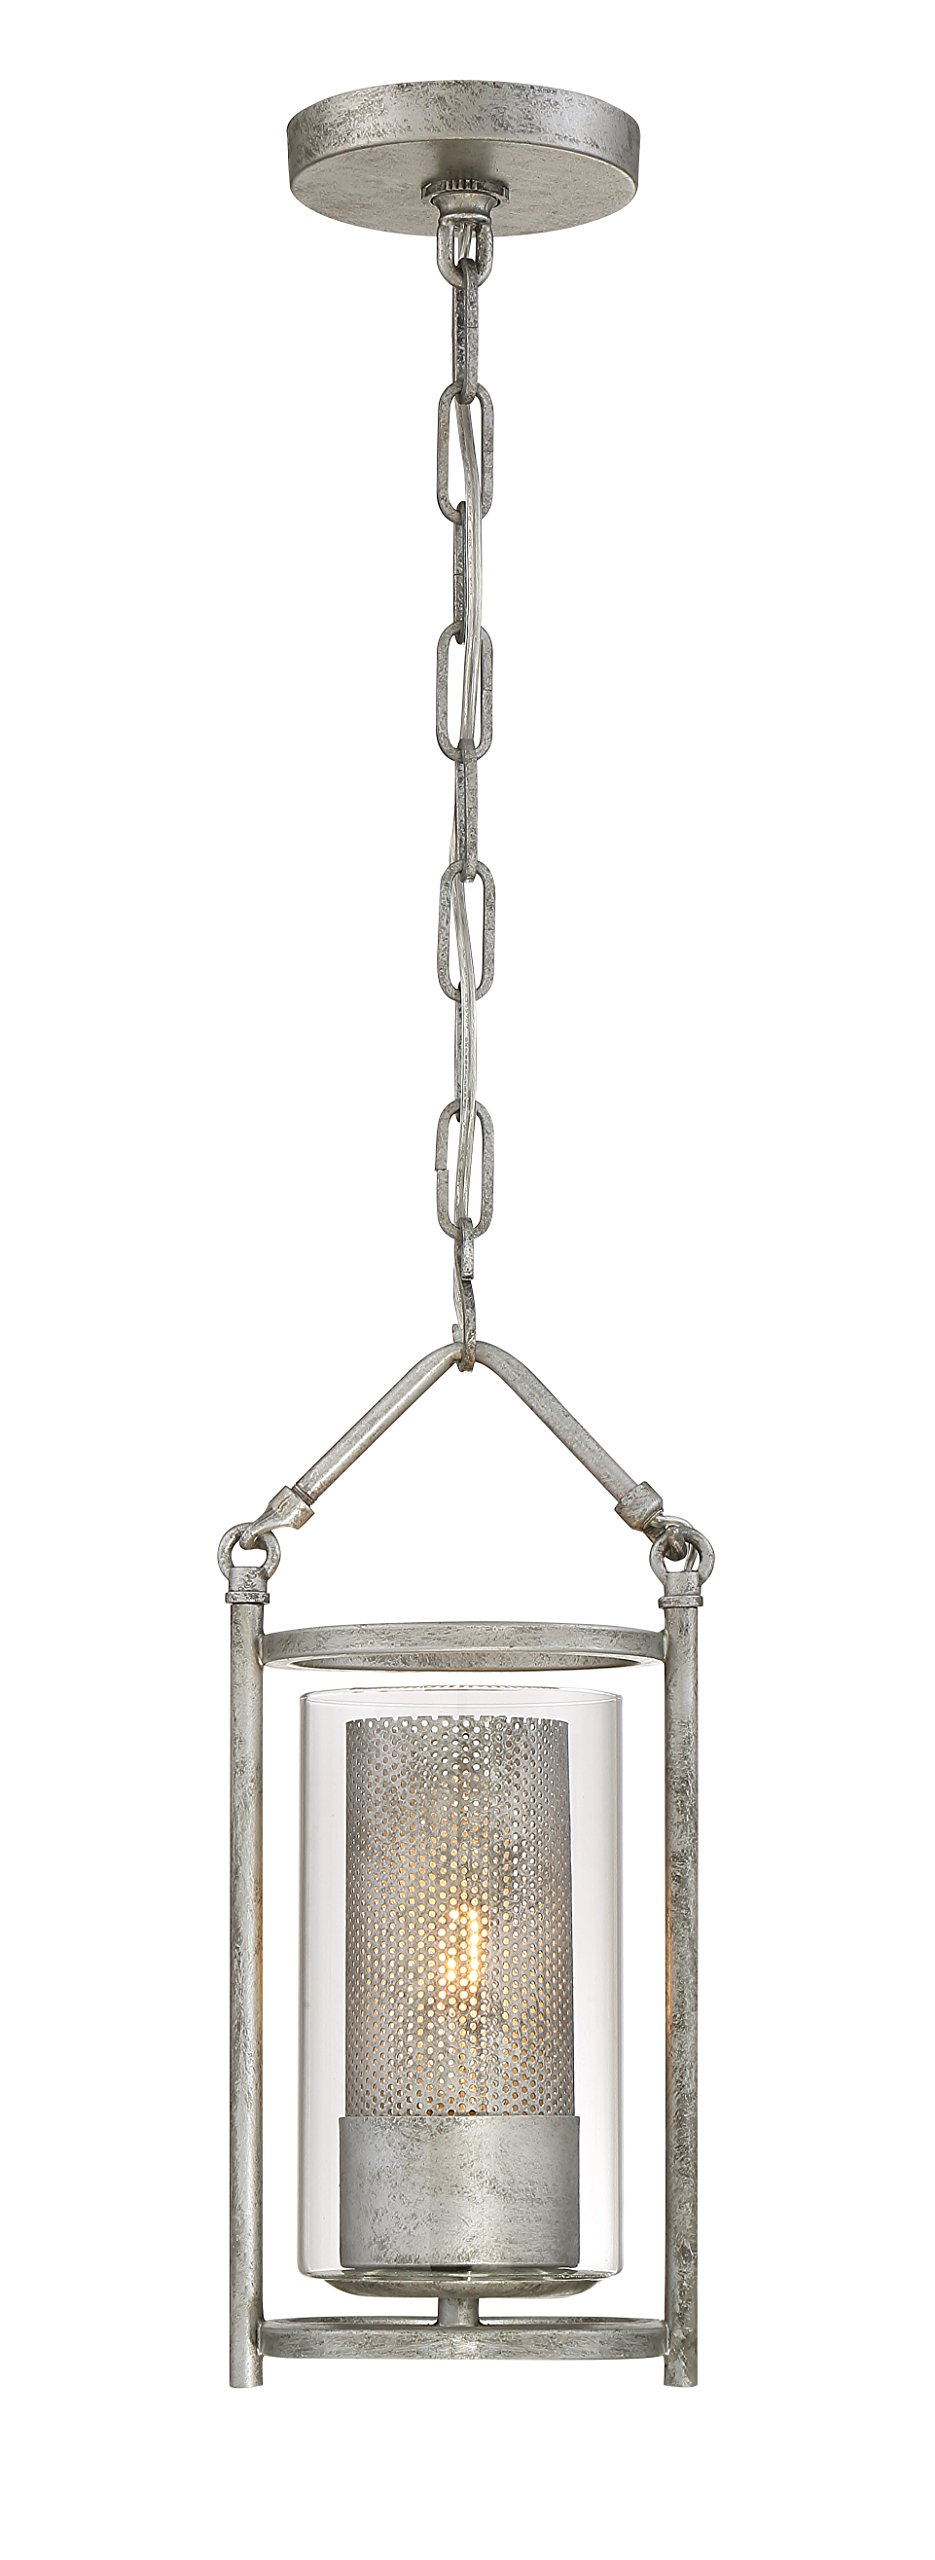 Jackson 1-Light Mini Pendant - Antique Silver Finish with Recycled Arched Window Pane Glass Shade